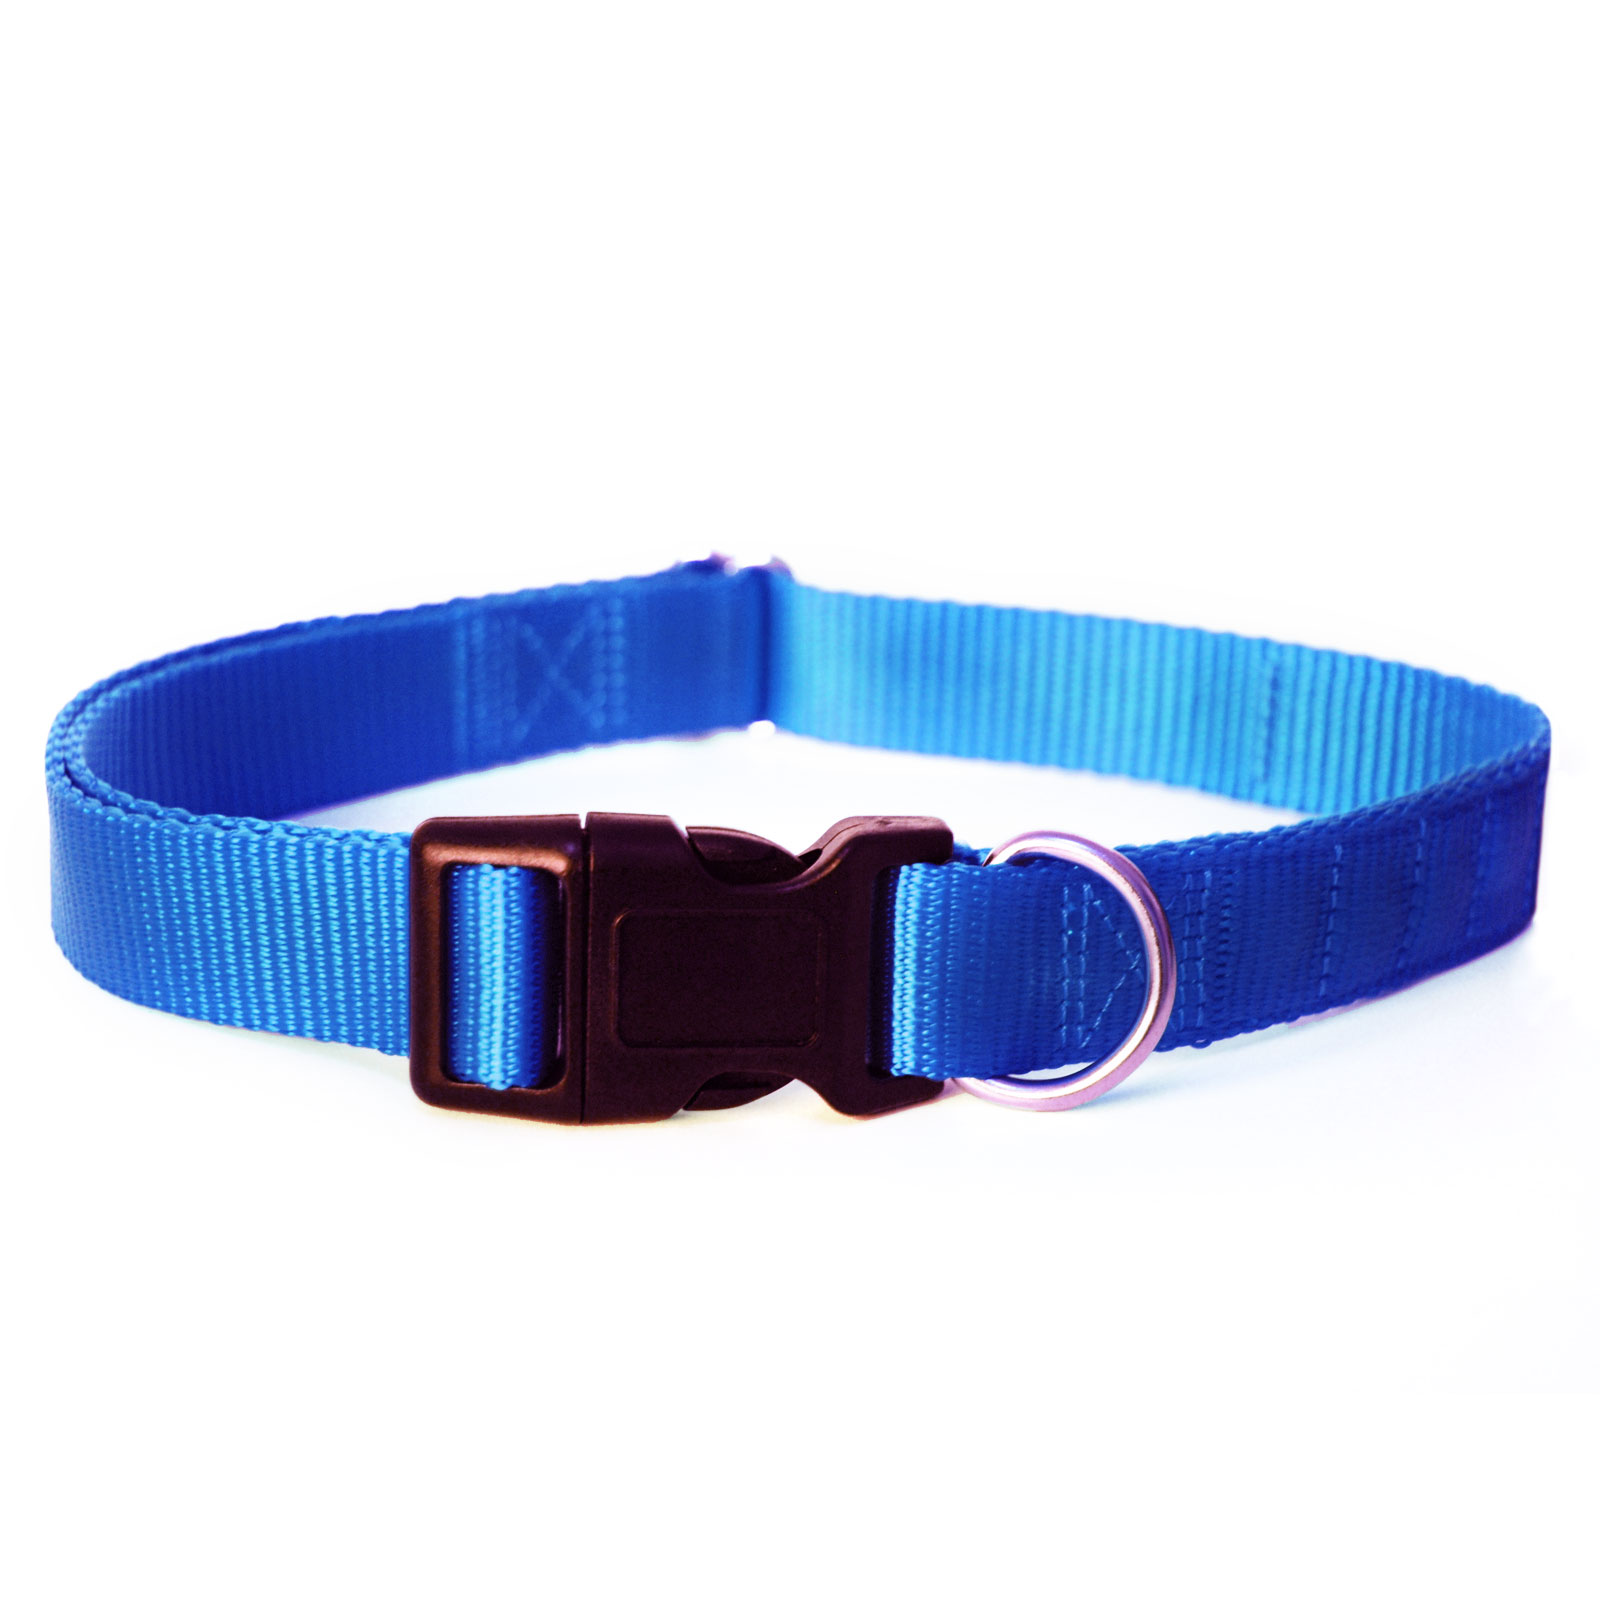 Magnet Collars For Dogs